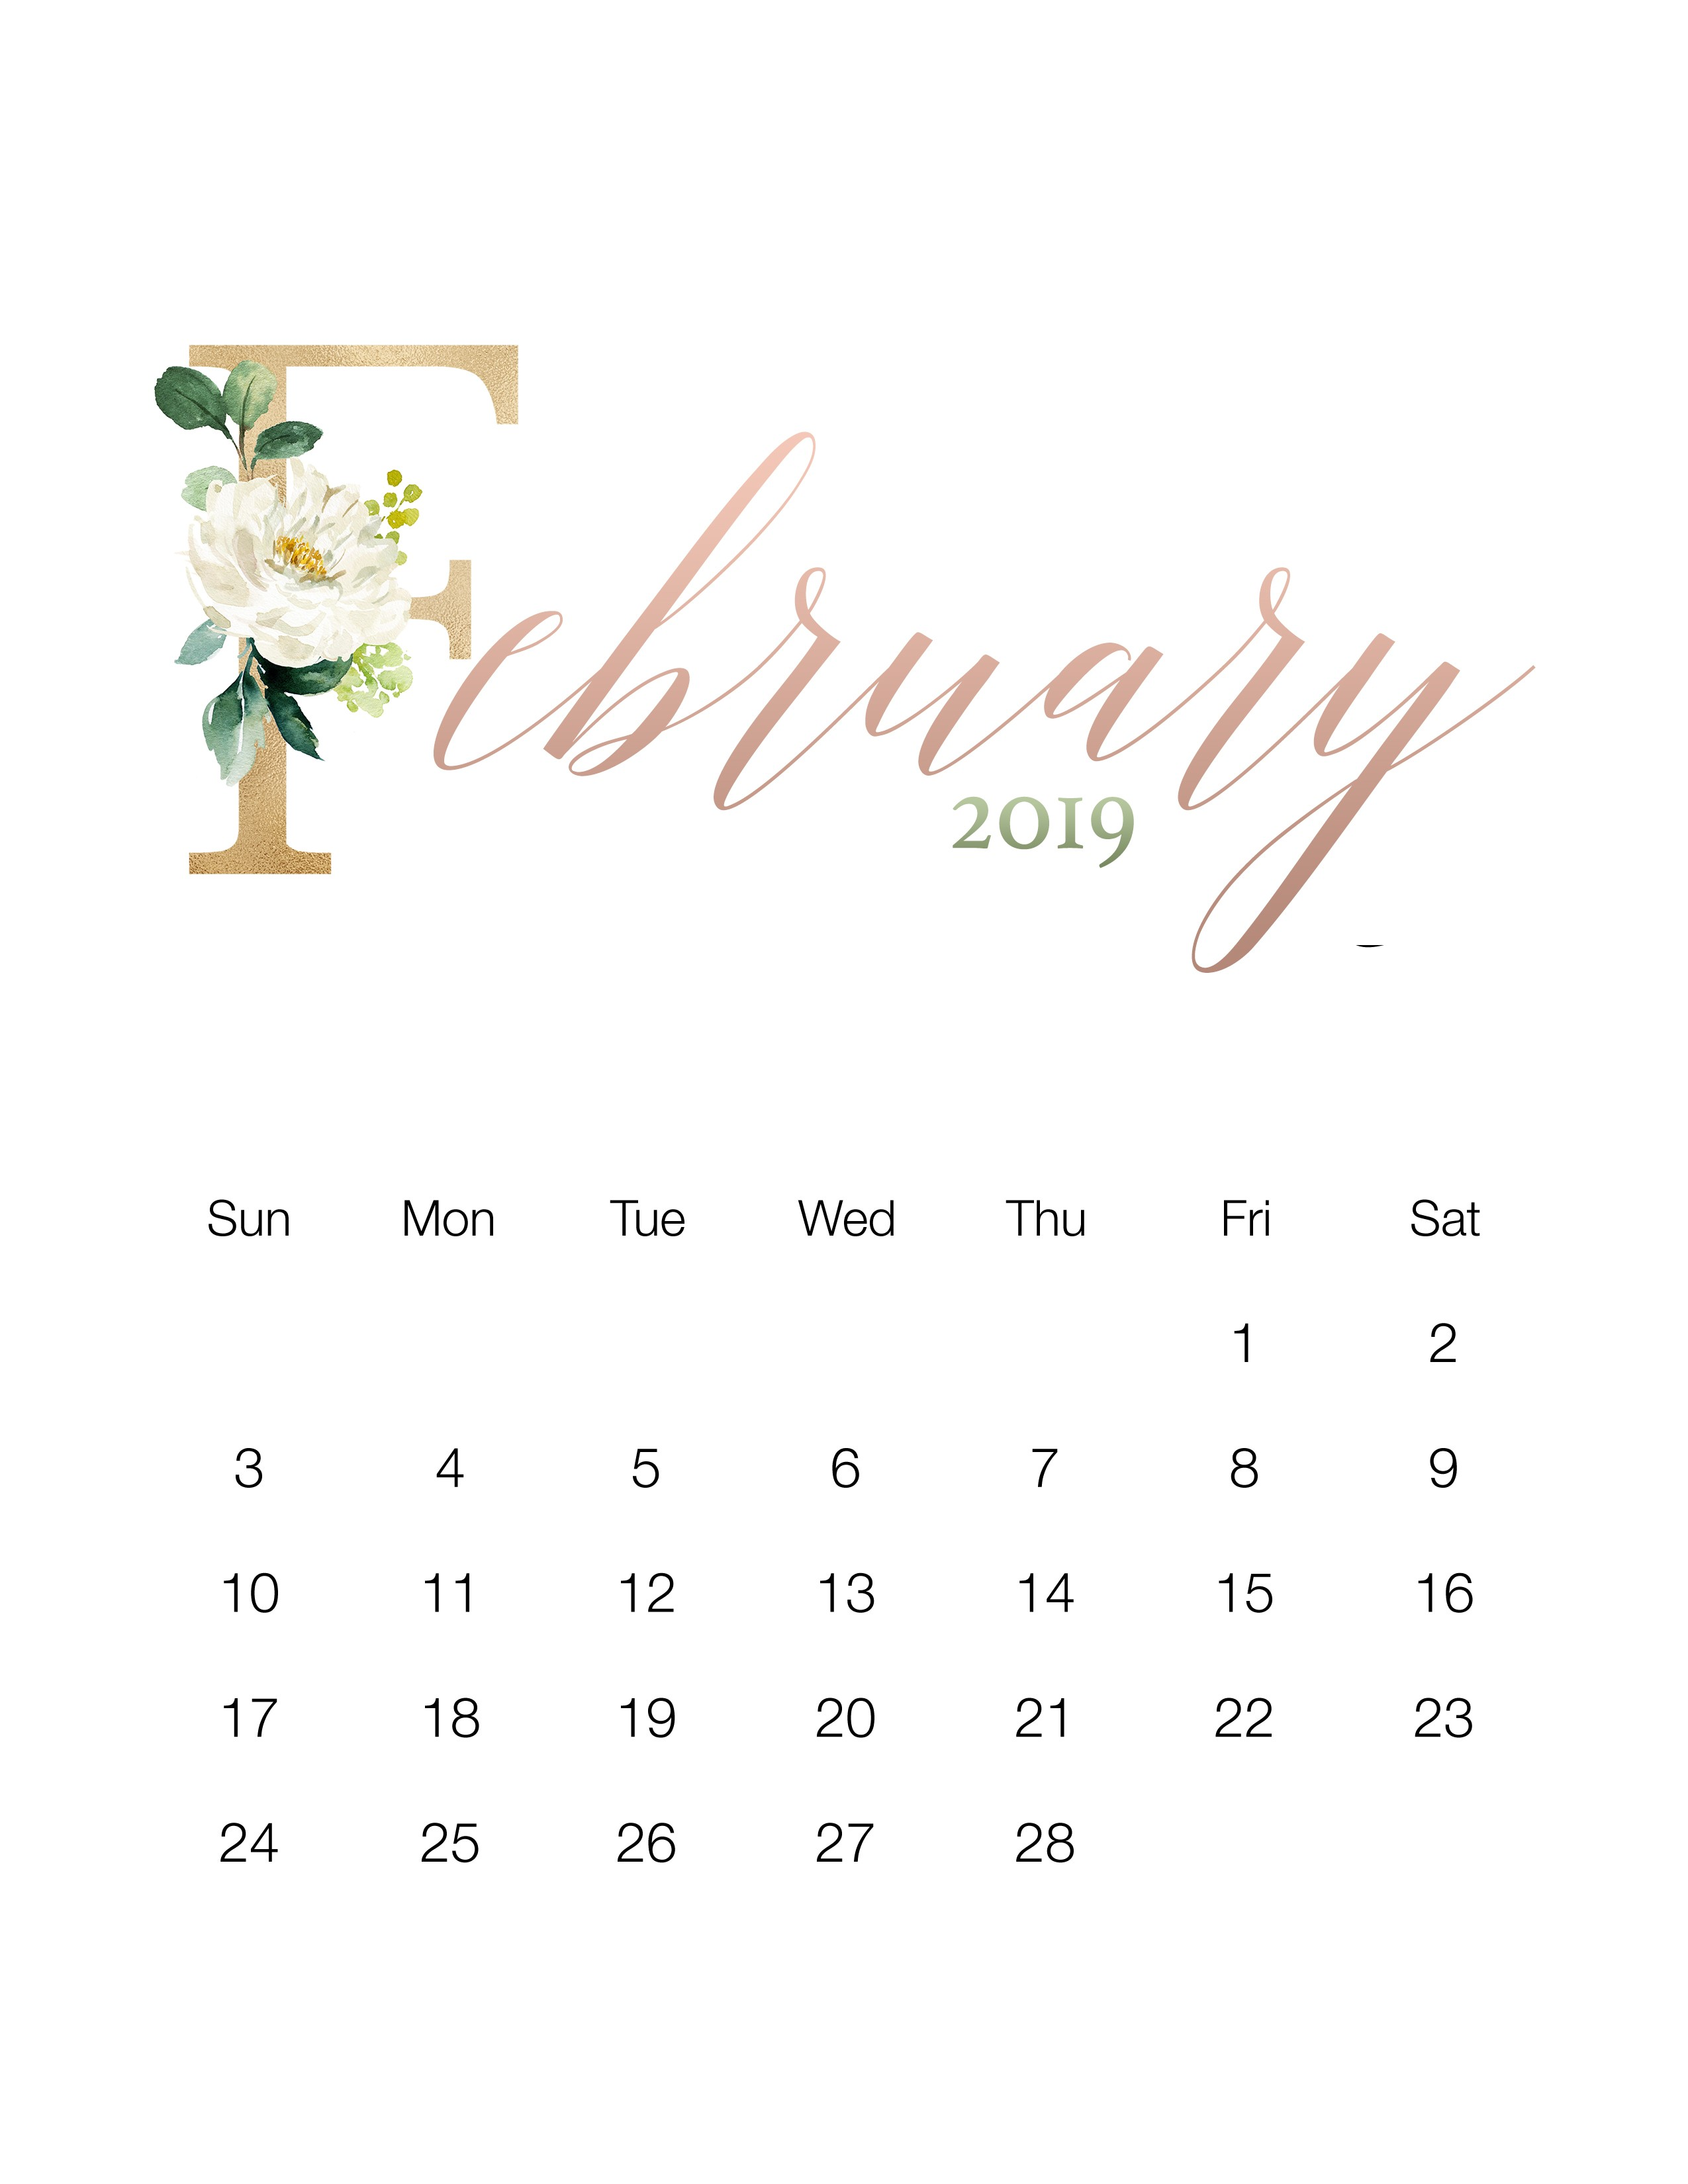 March Calendar 2019 Actual Pretty Floral Free Printable 2019 Calendar the Cottage Market Of March Calendar 2019 Actual Gujarati Calendar 2019 Printable Printed for No Cost – Calendaro